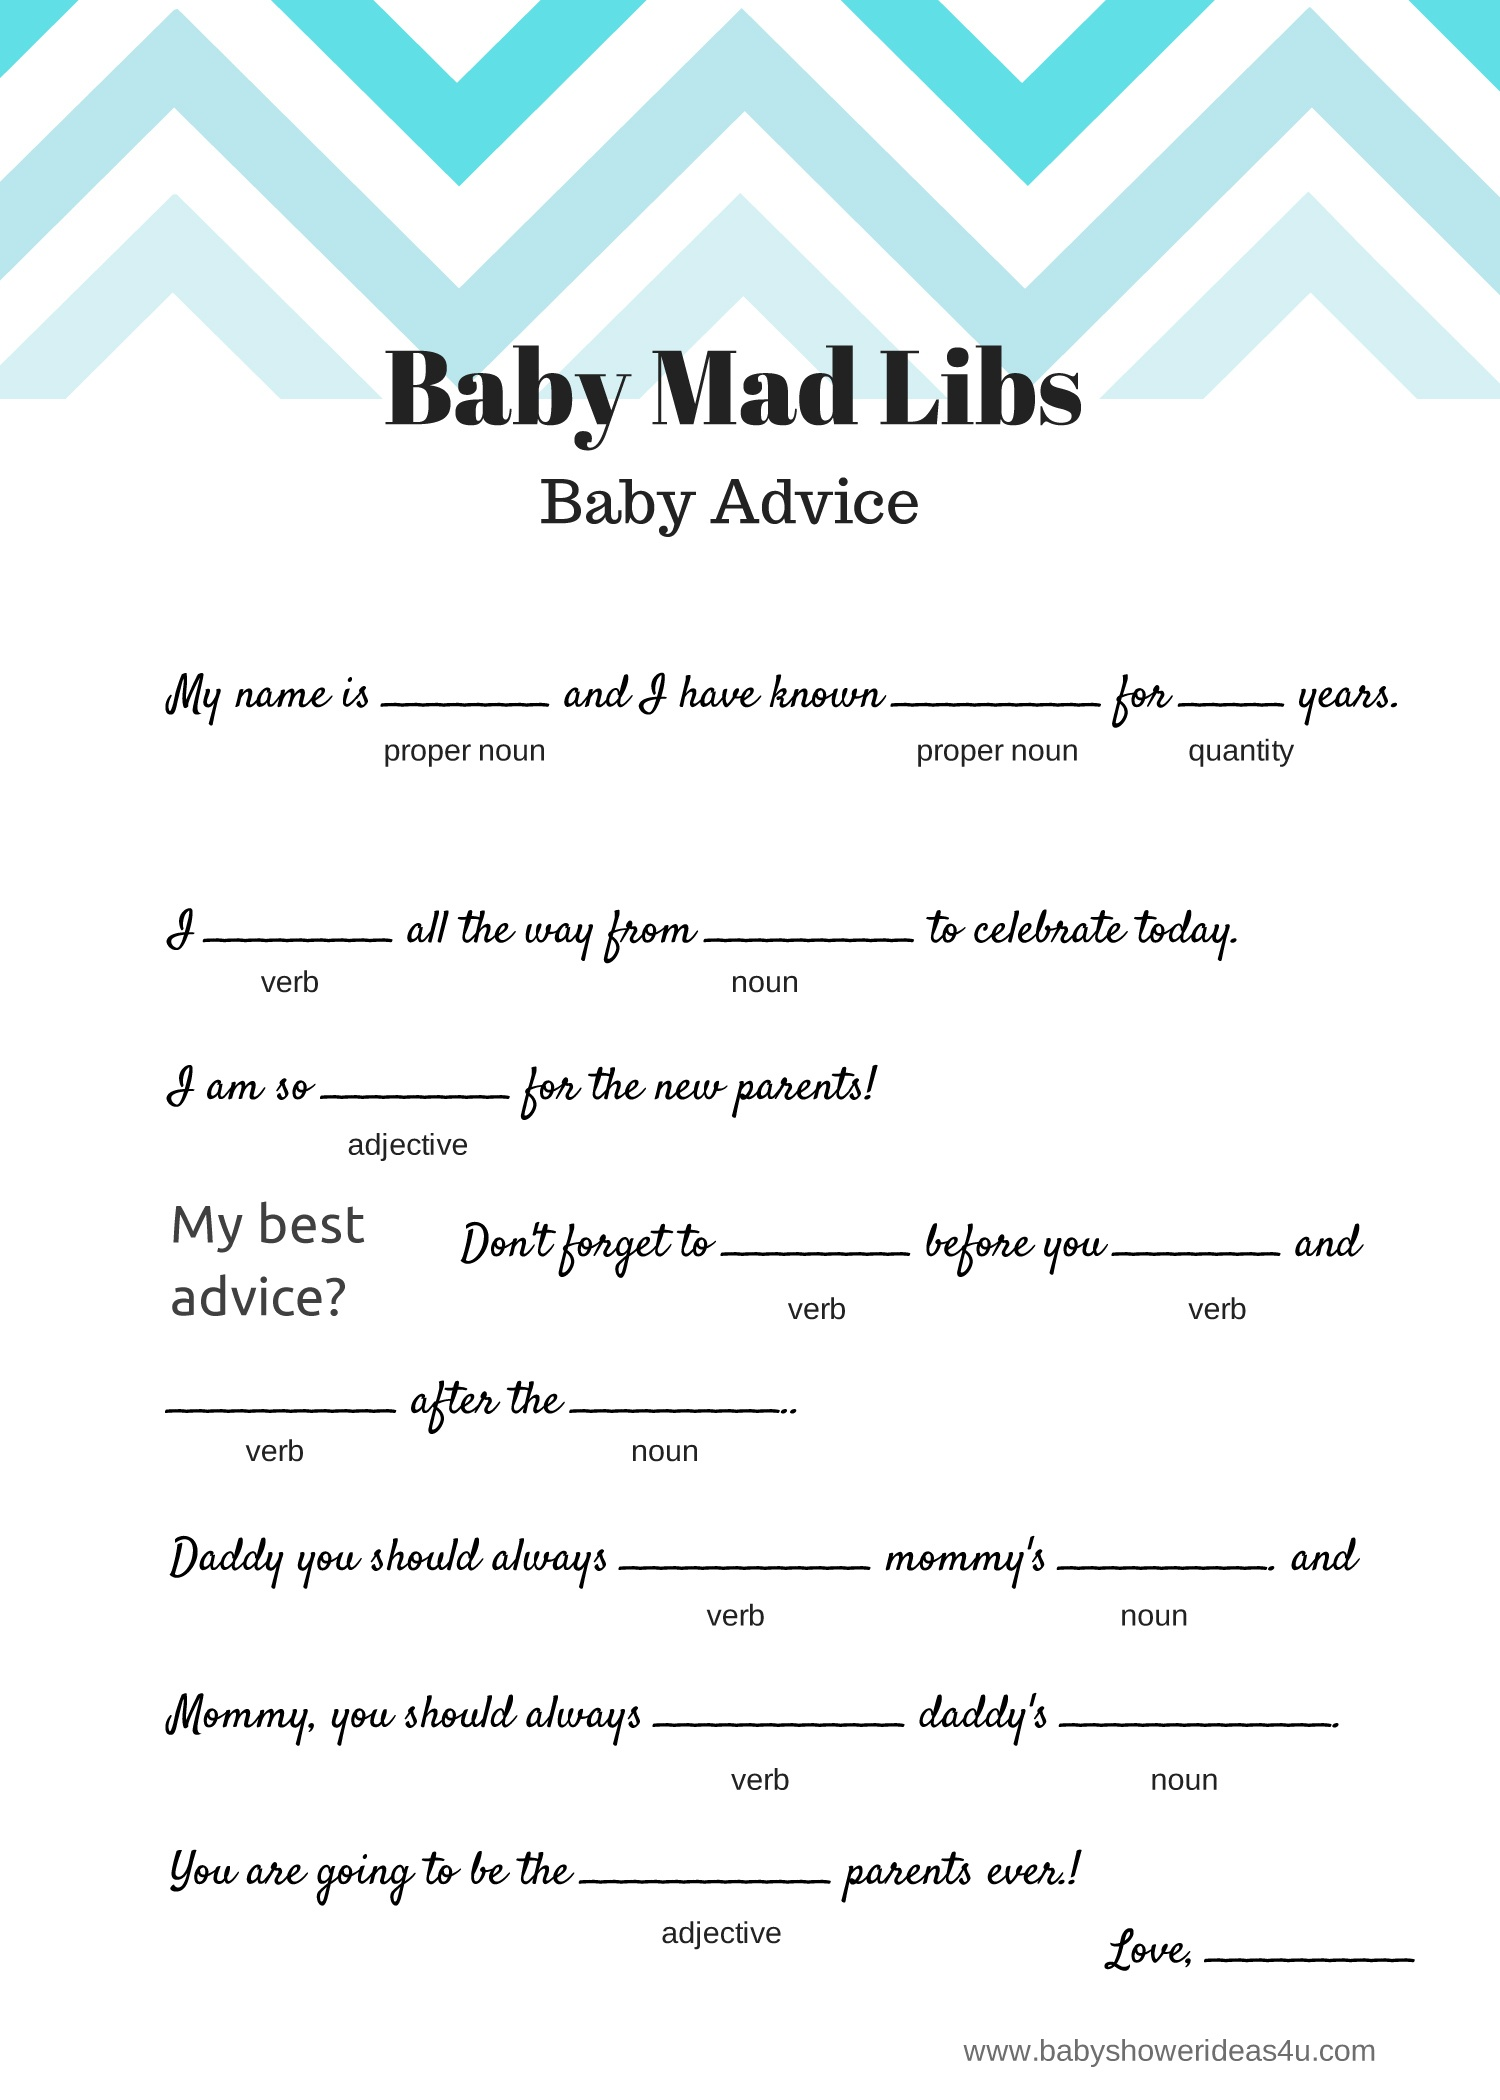 Free Baby Mad Libs Game - Baby Advice - Baby Shower Ideas - Themes - Baby Shower Mad Libs Printable Free